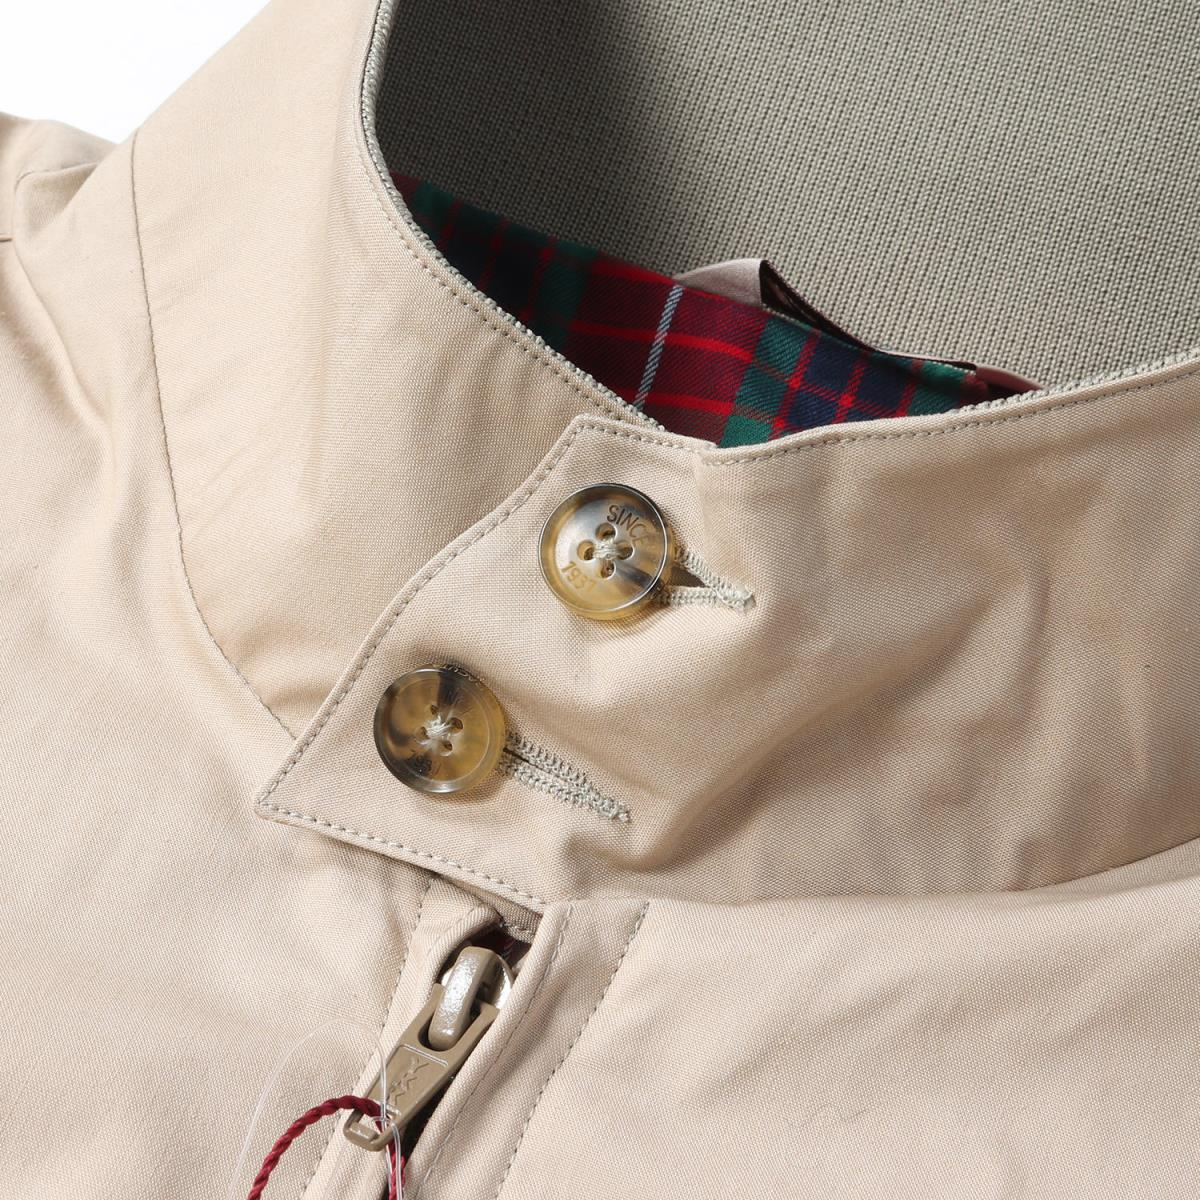 BARACUTA (バラクータ) 18S/S BEAMS PLUS comment G9 Harrington jacket (classic  model) tongue (sand) 38(M)